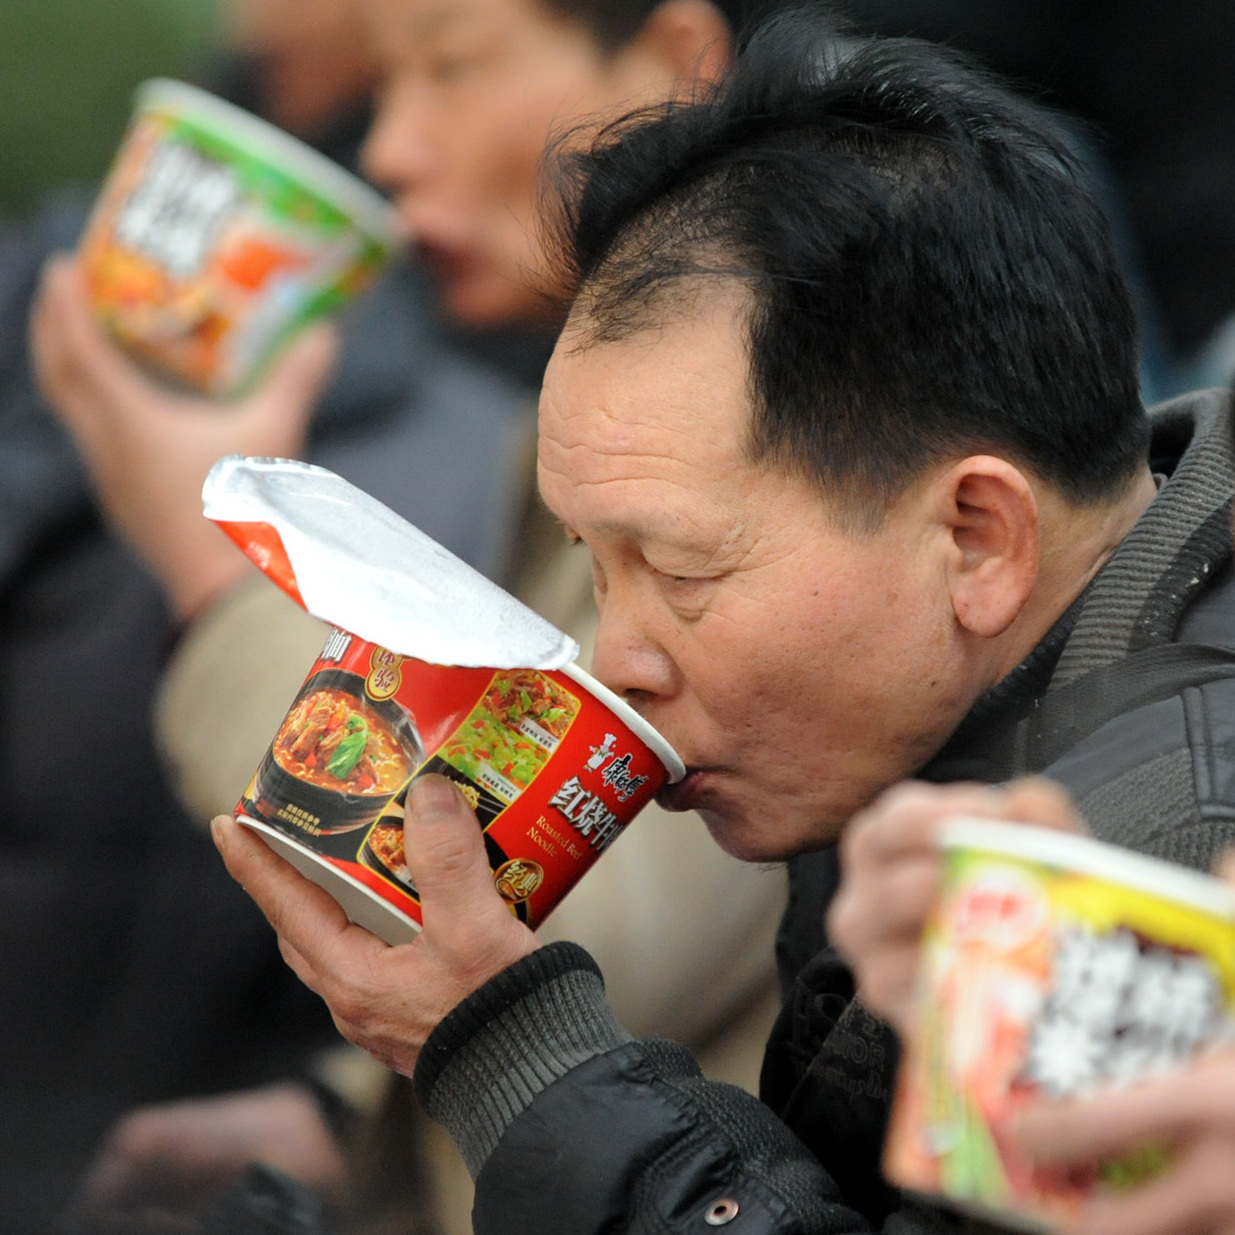 Passengers eat instant noodles at the railway station in Shenyang, China in January 2013.